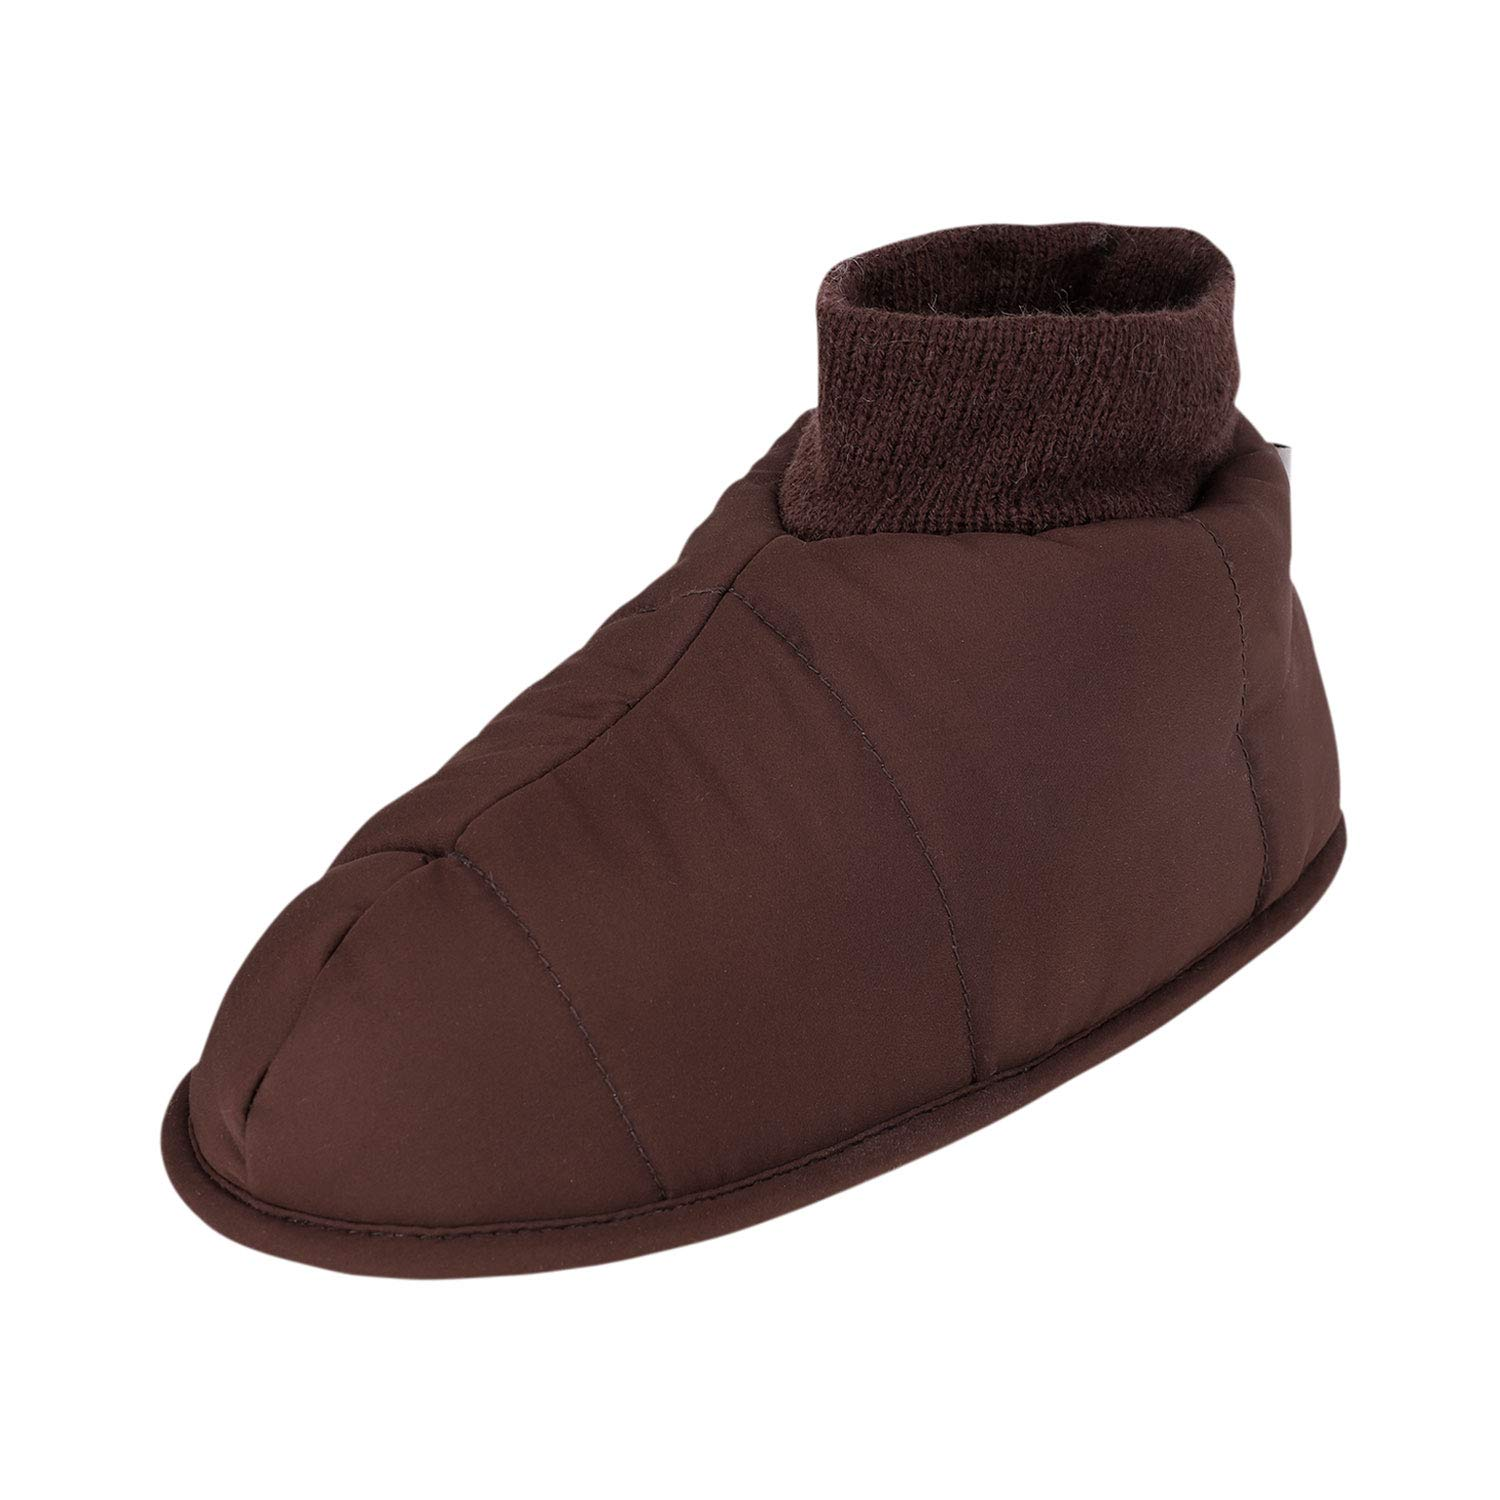 1a688c016 Amazon.com | Holiberty Waterproof Cozy Down Warm Fleece Indoor Slippers  Bootie Shoes Ankle Snow Boots | Slippers